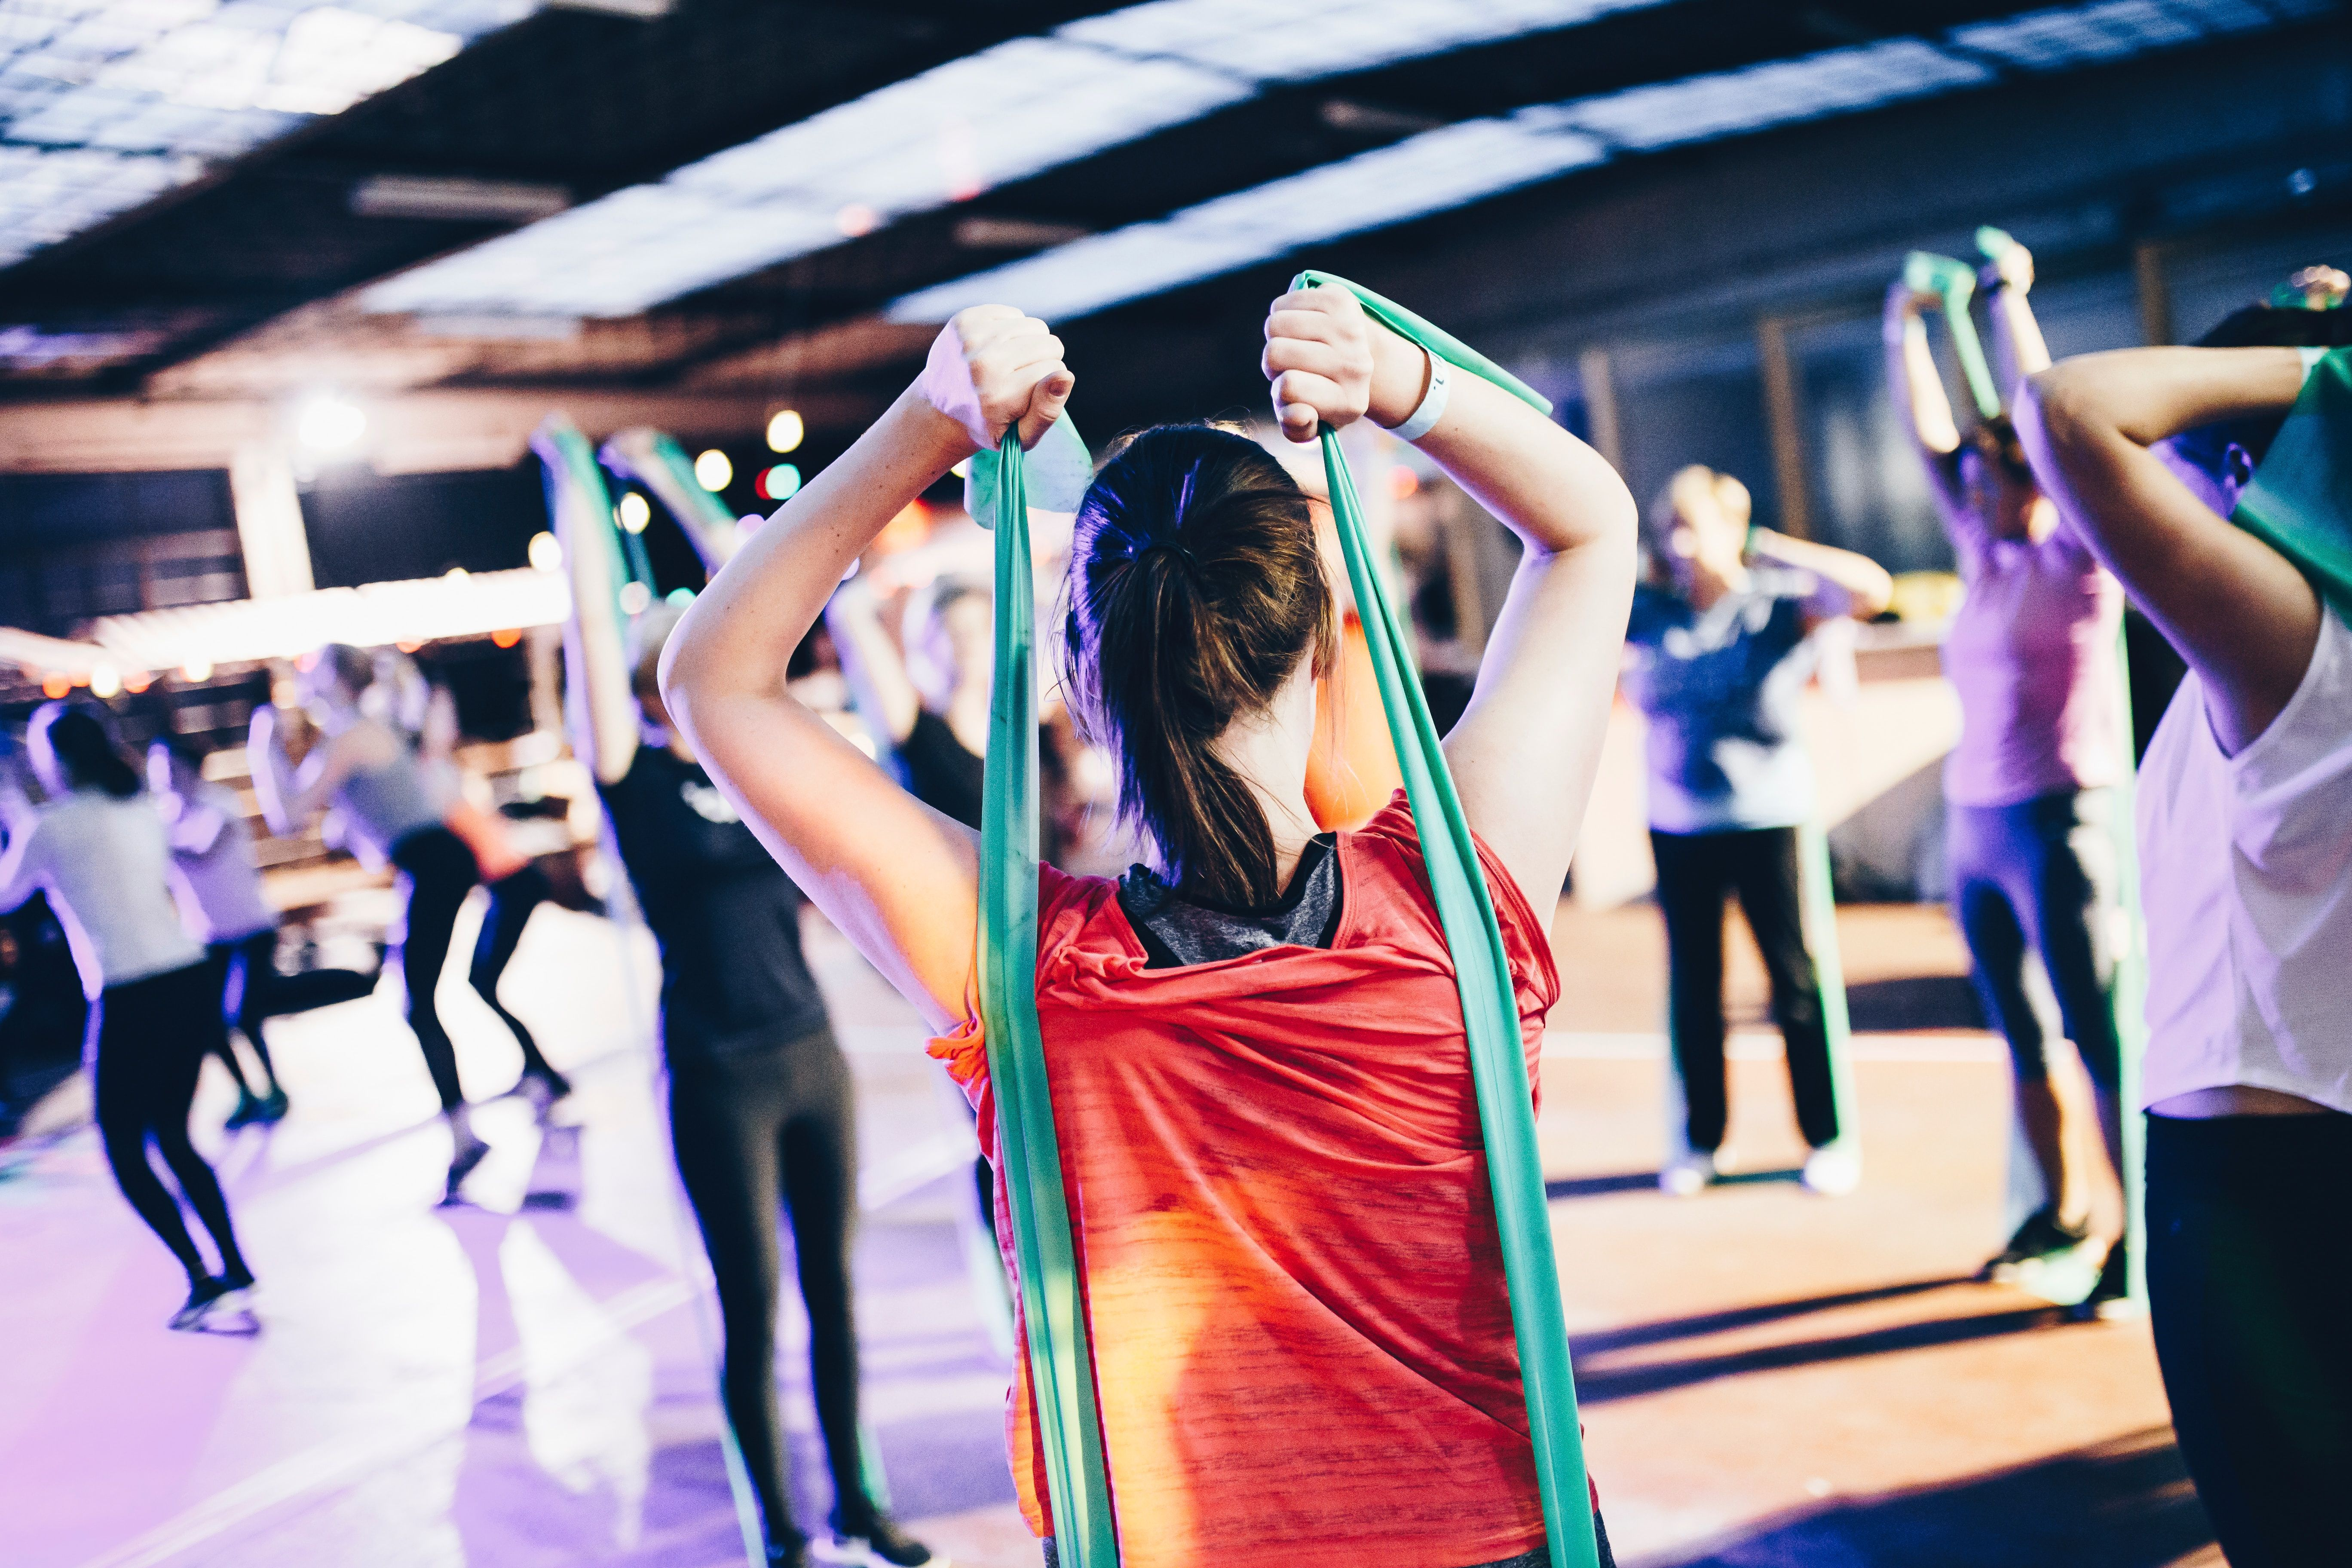 Exercise class